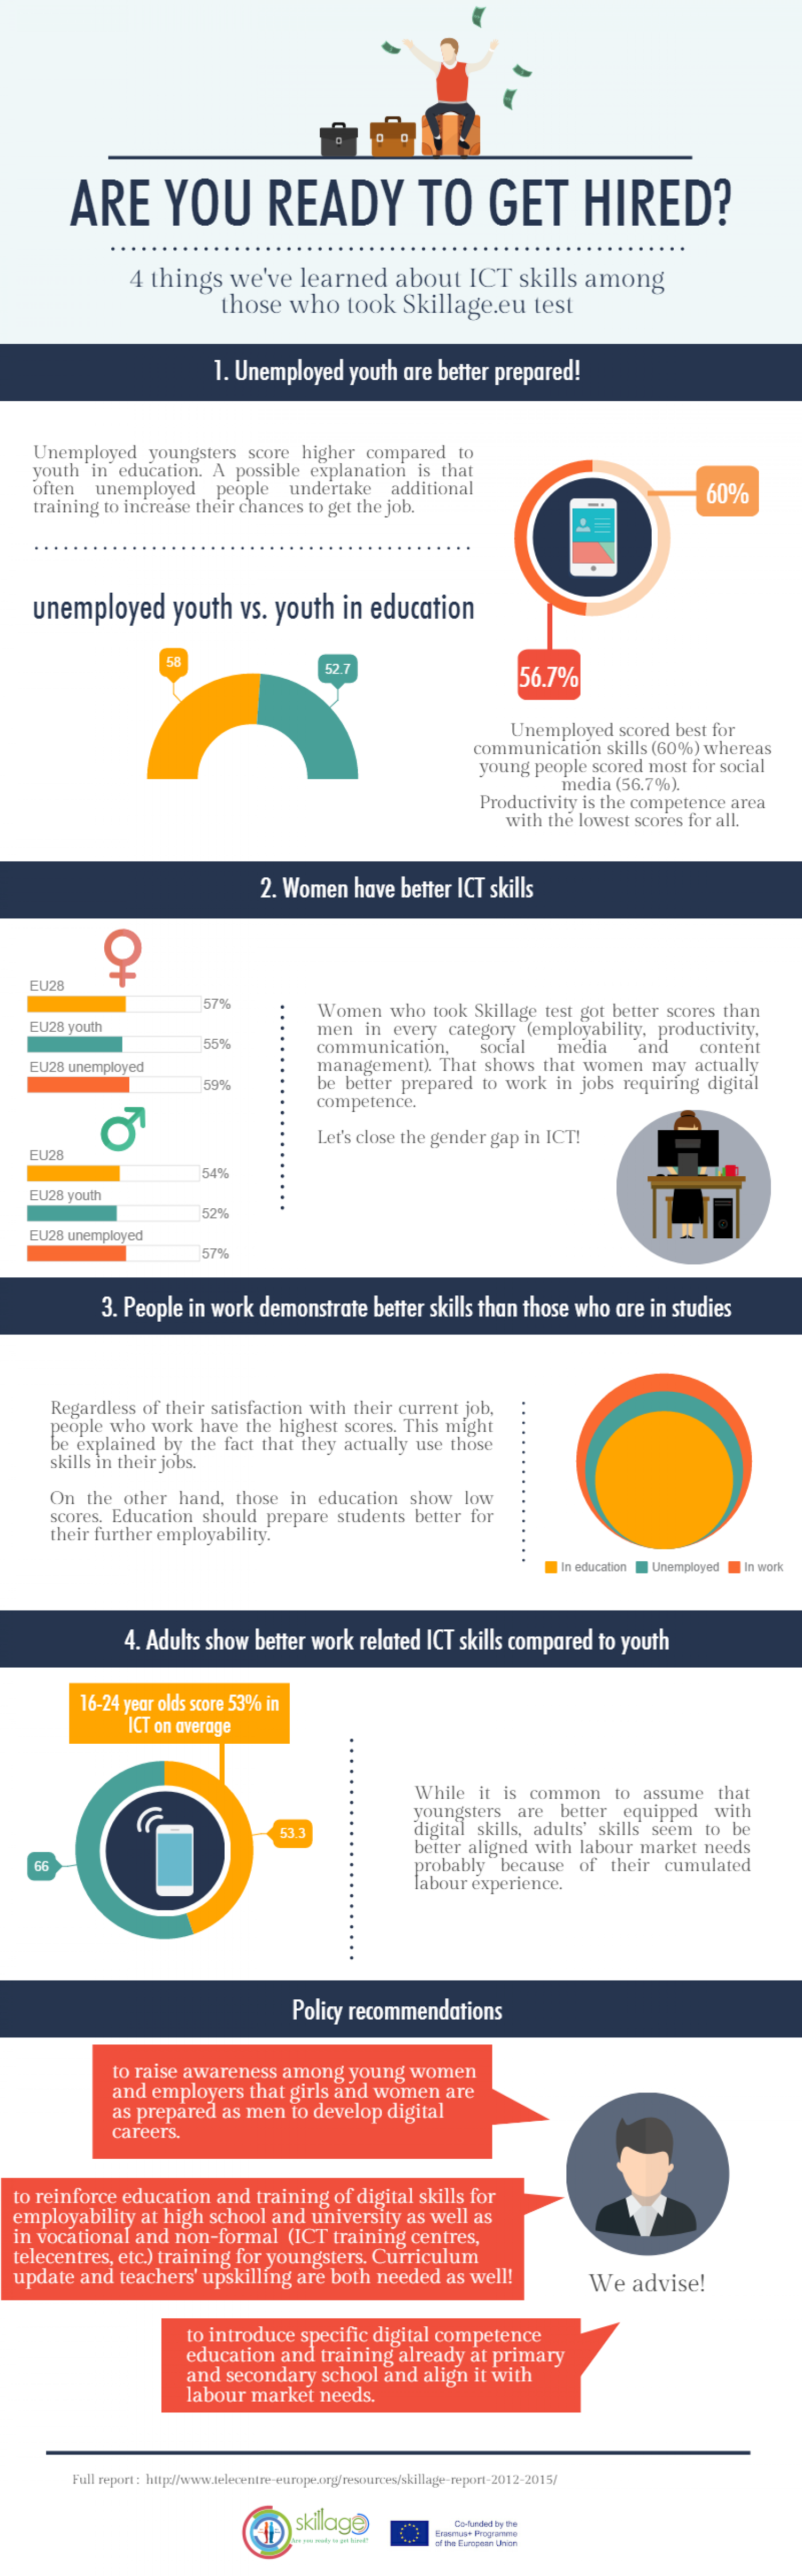 Skillage: Are you ready to get hired? Infographic